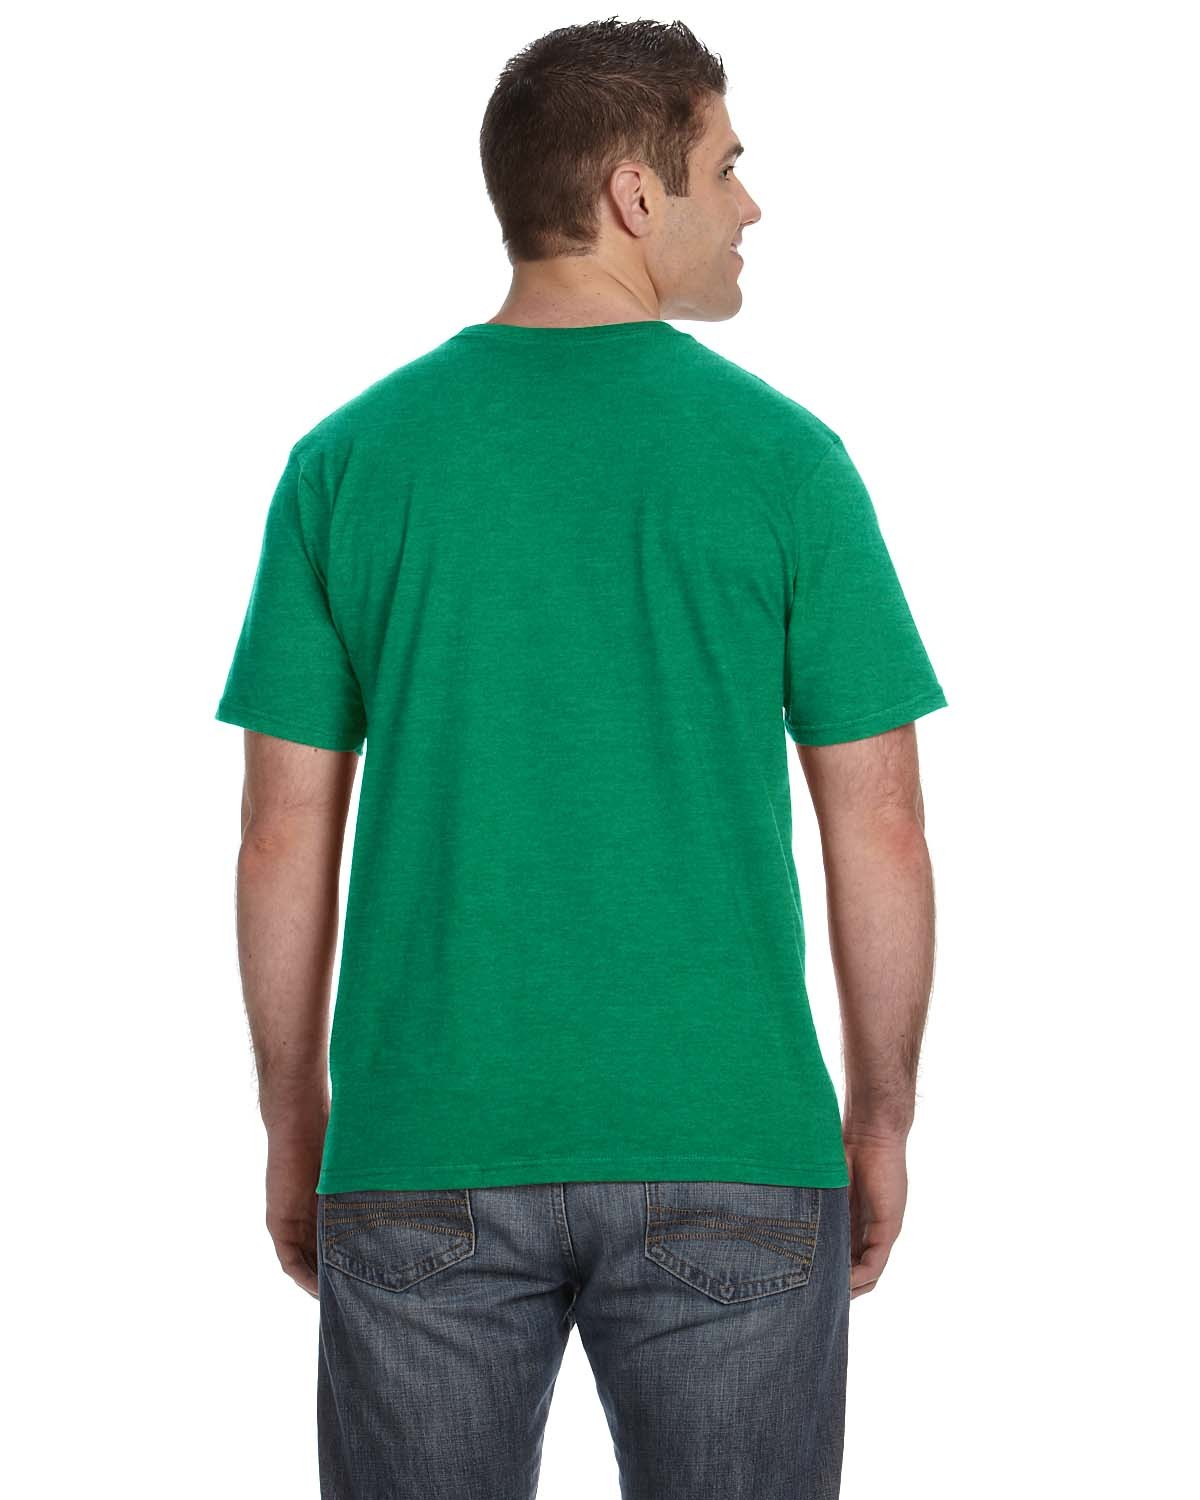 980 Anvil HEATHER GREEN